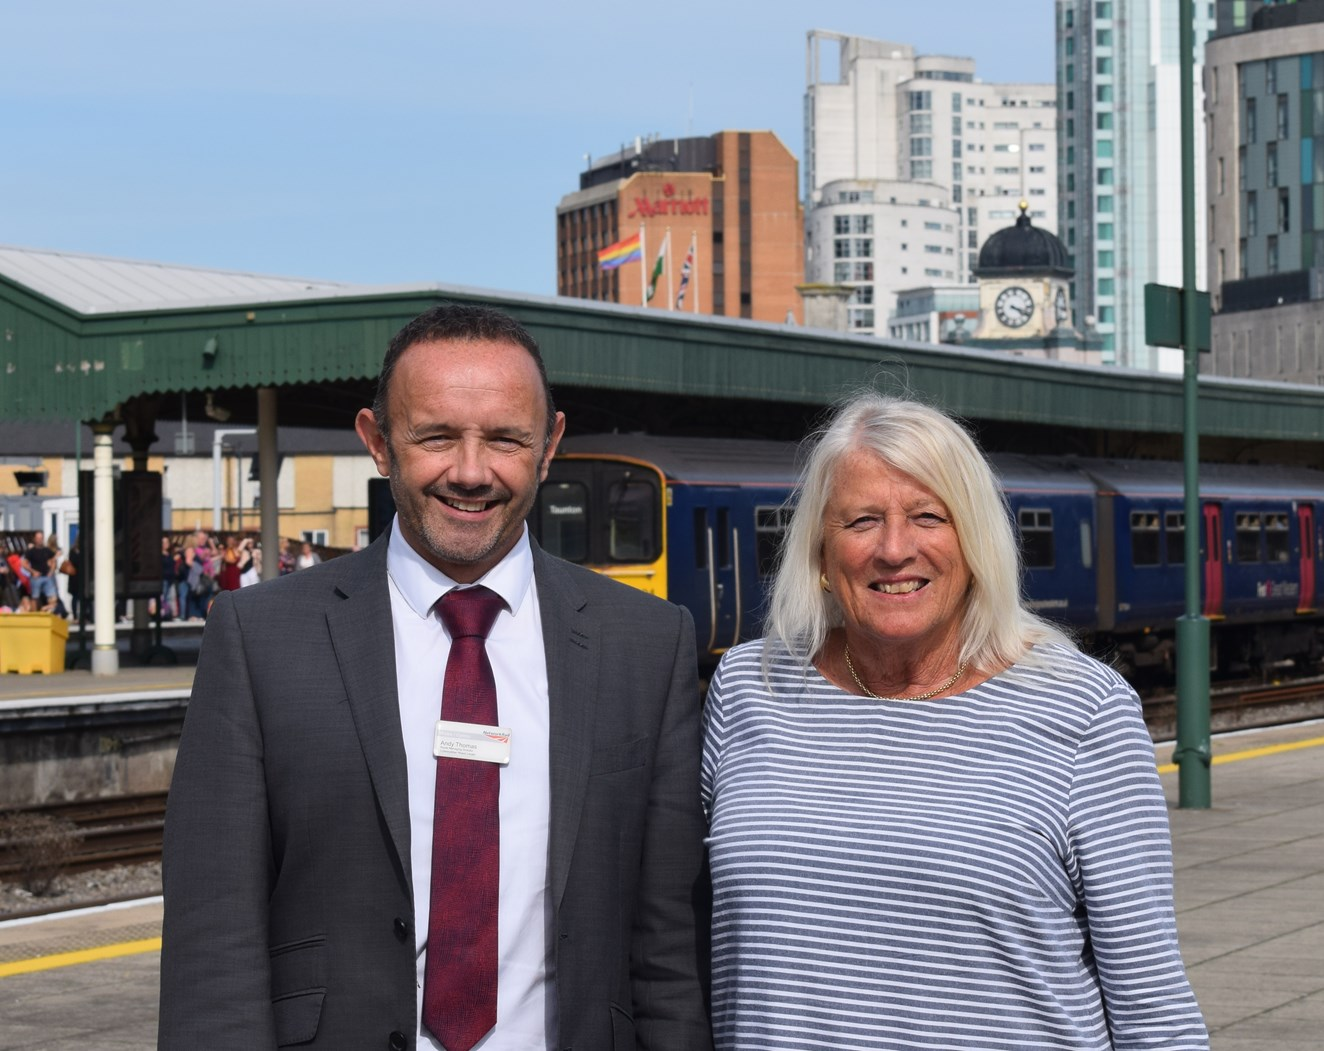 Track and train brought closer together as rail industry creates new board to represent customers in Wales and the borders: Andy Thomas, route managing director for Network Rail Wales, and Margaret Llewellyn, the chair of the Wales Route Supervisory Board